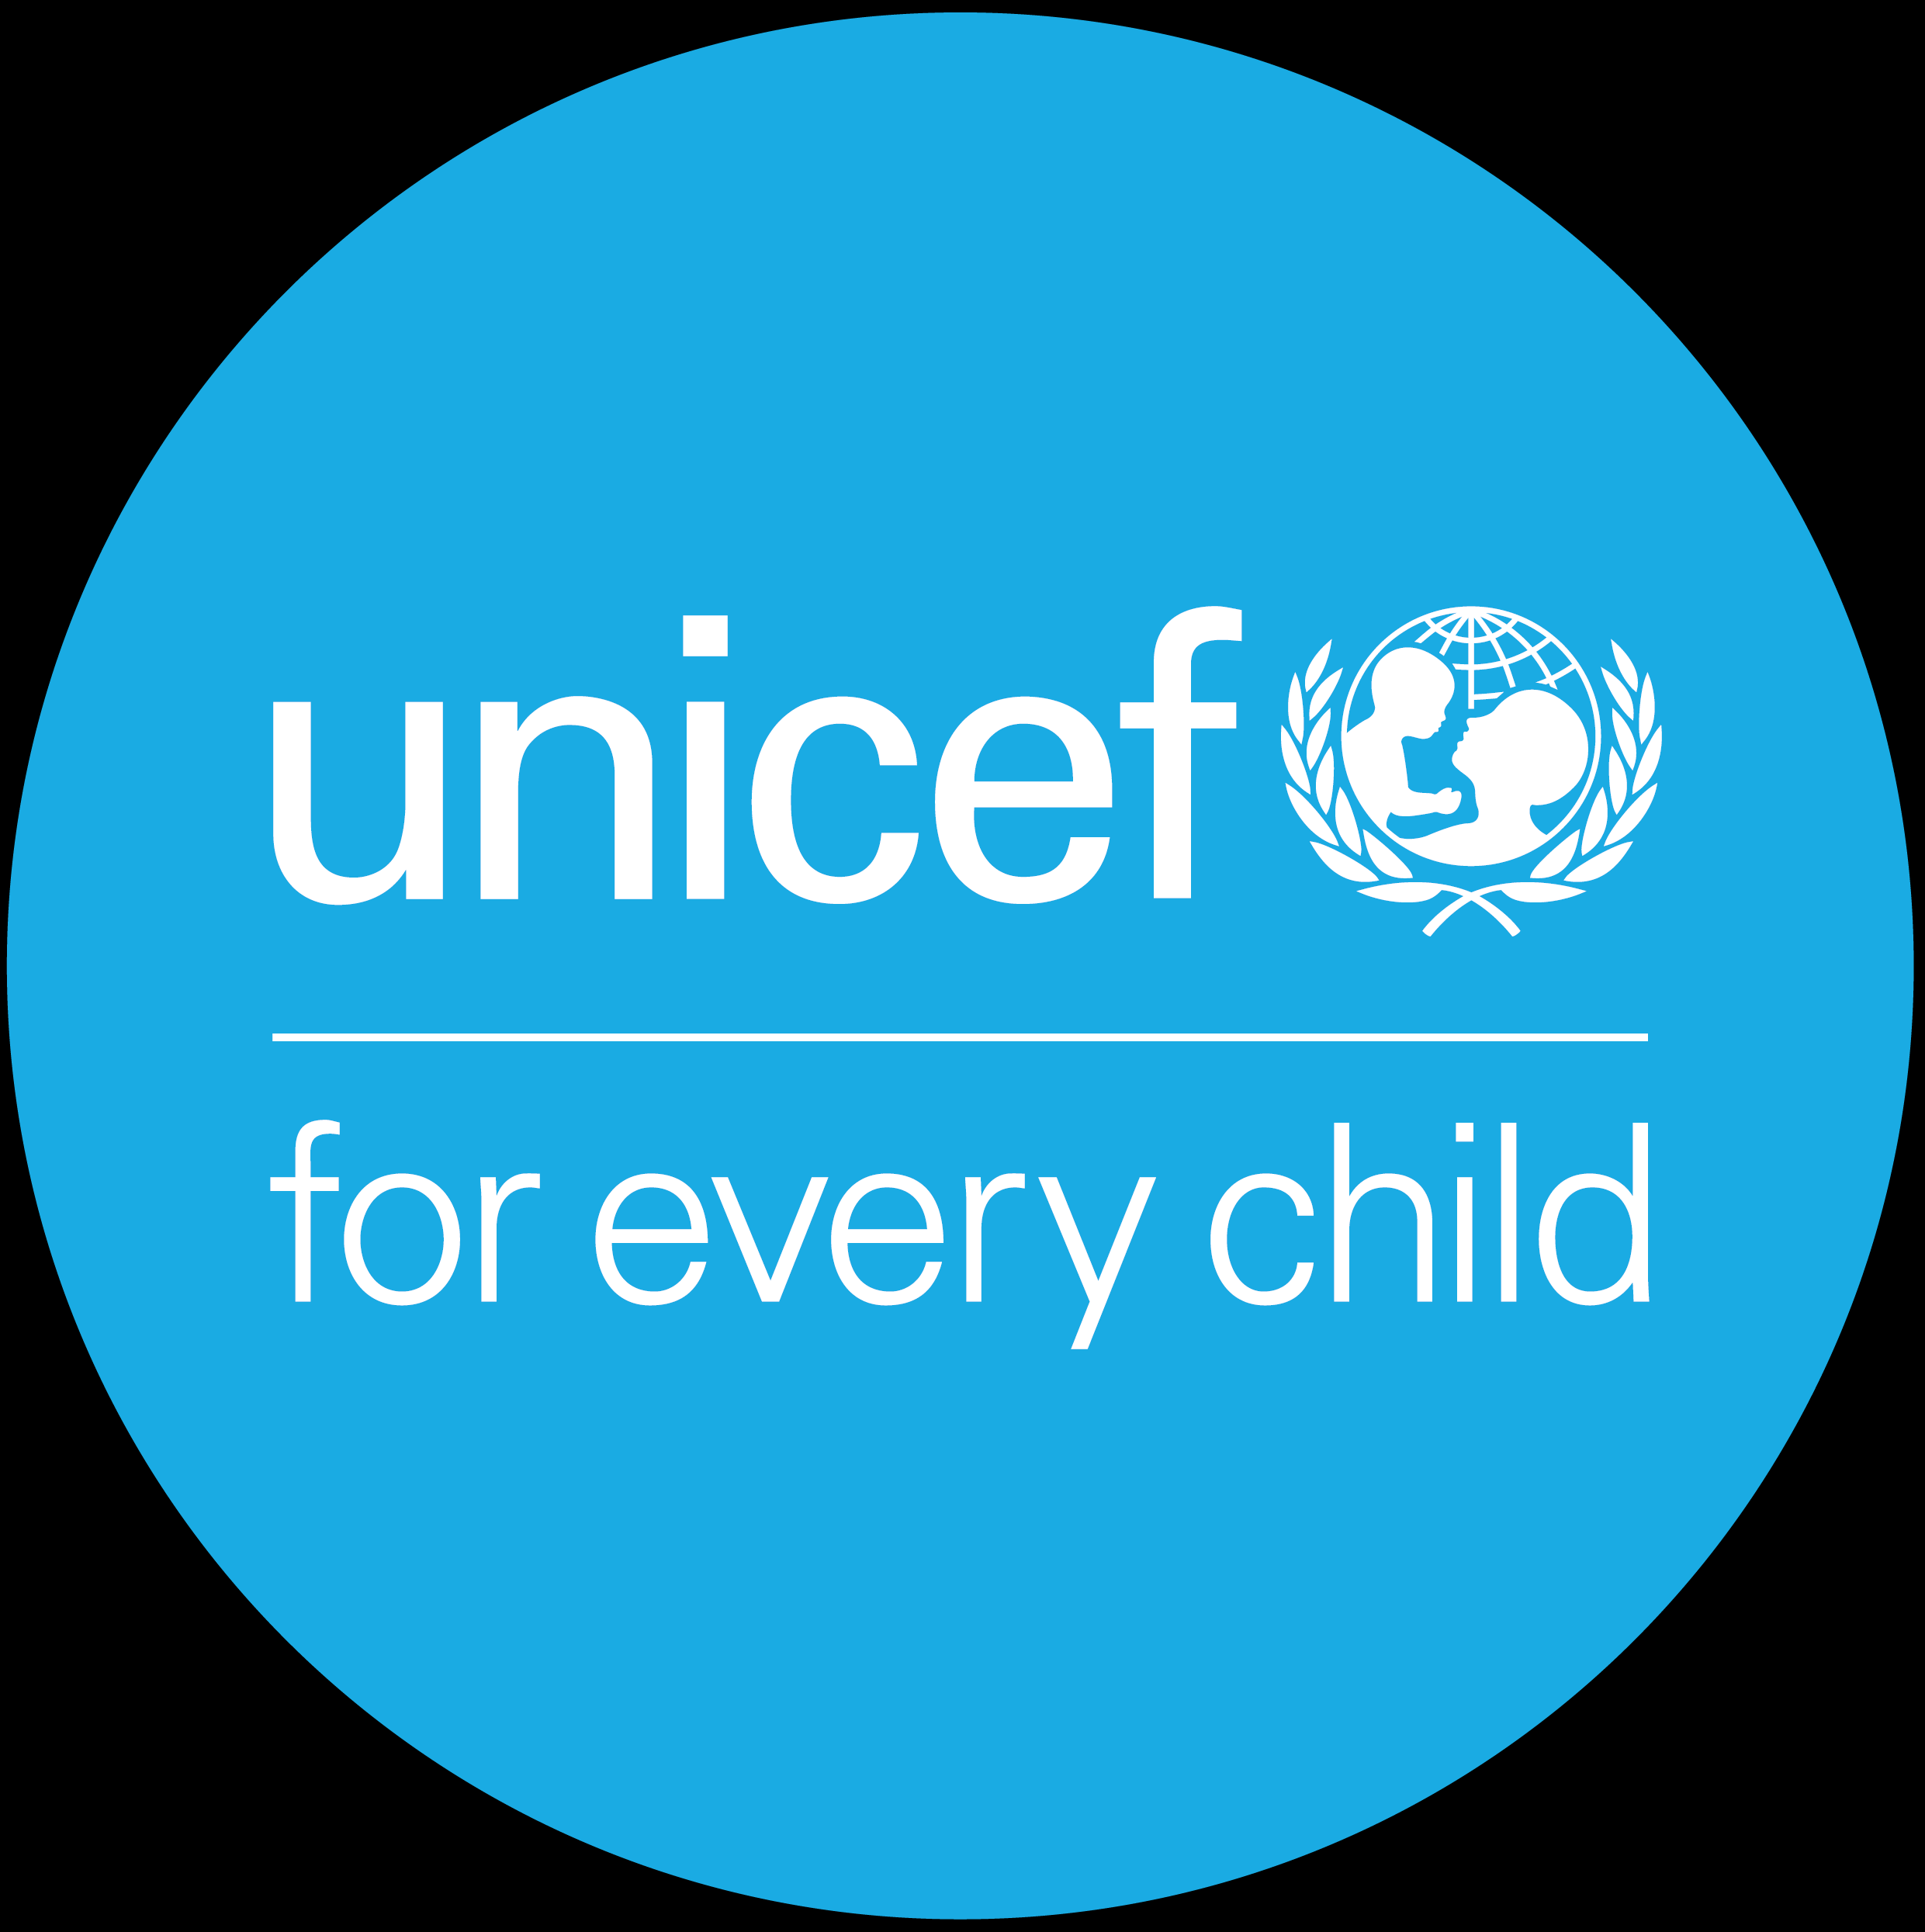 https://assets.roar.media/assets/qXE8KULbcn2yx2HO_Unicef.png